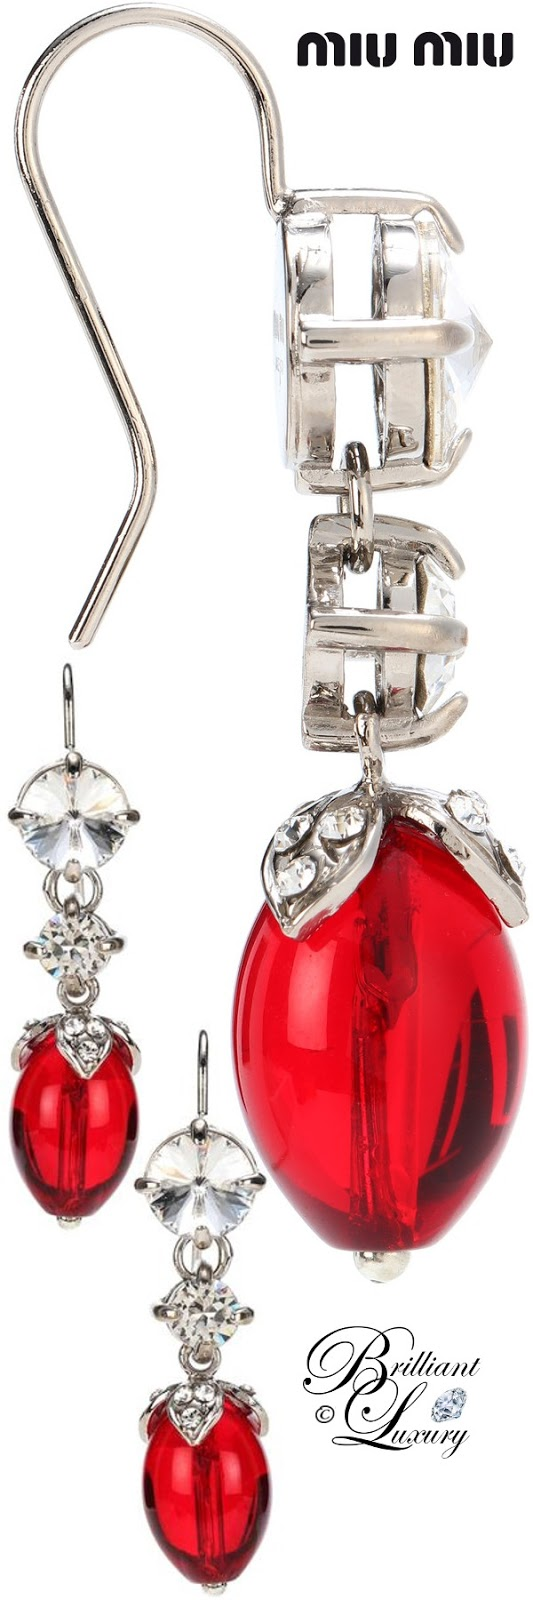 Brilliant Luxury ♦ PANTONE Fashion Color SS 2019 ~ Fiesta ♦ Miu Miu crystal embellished earrings #red